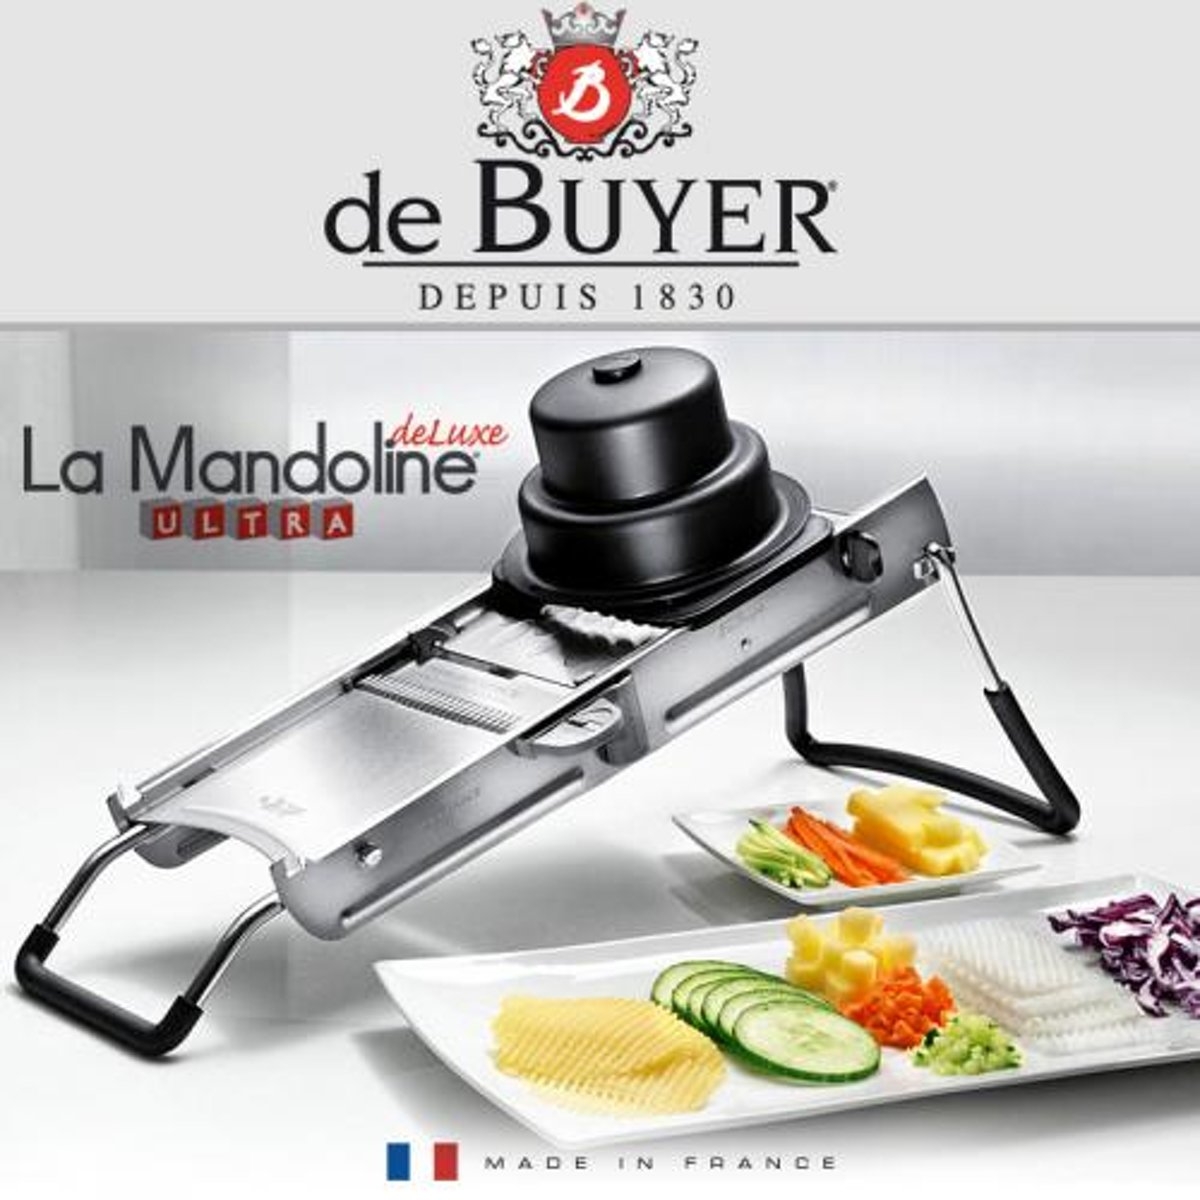 Tweedehands Mandoline Keuken De Buyer Mandoline Ultra